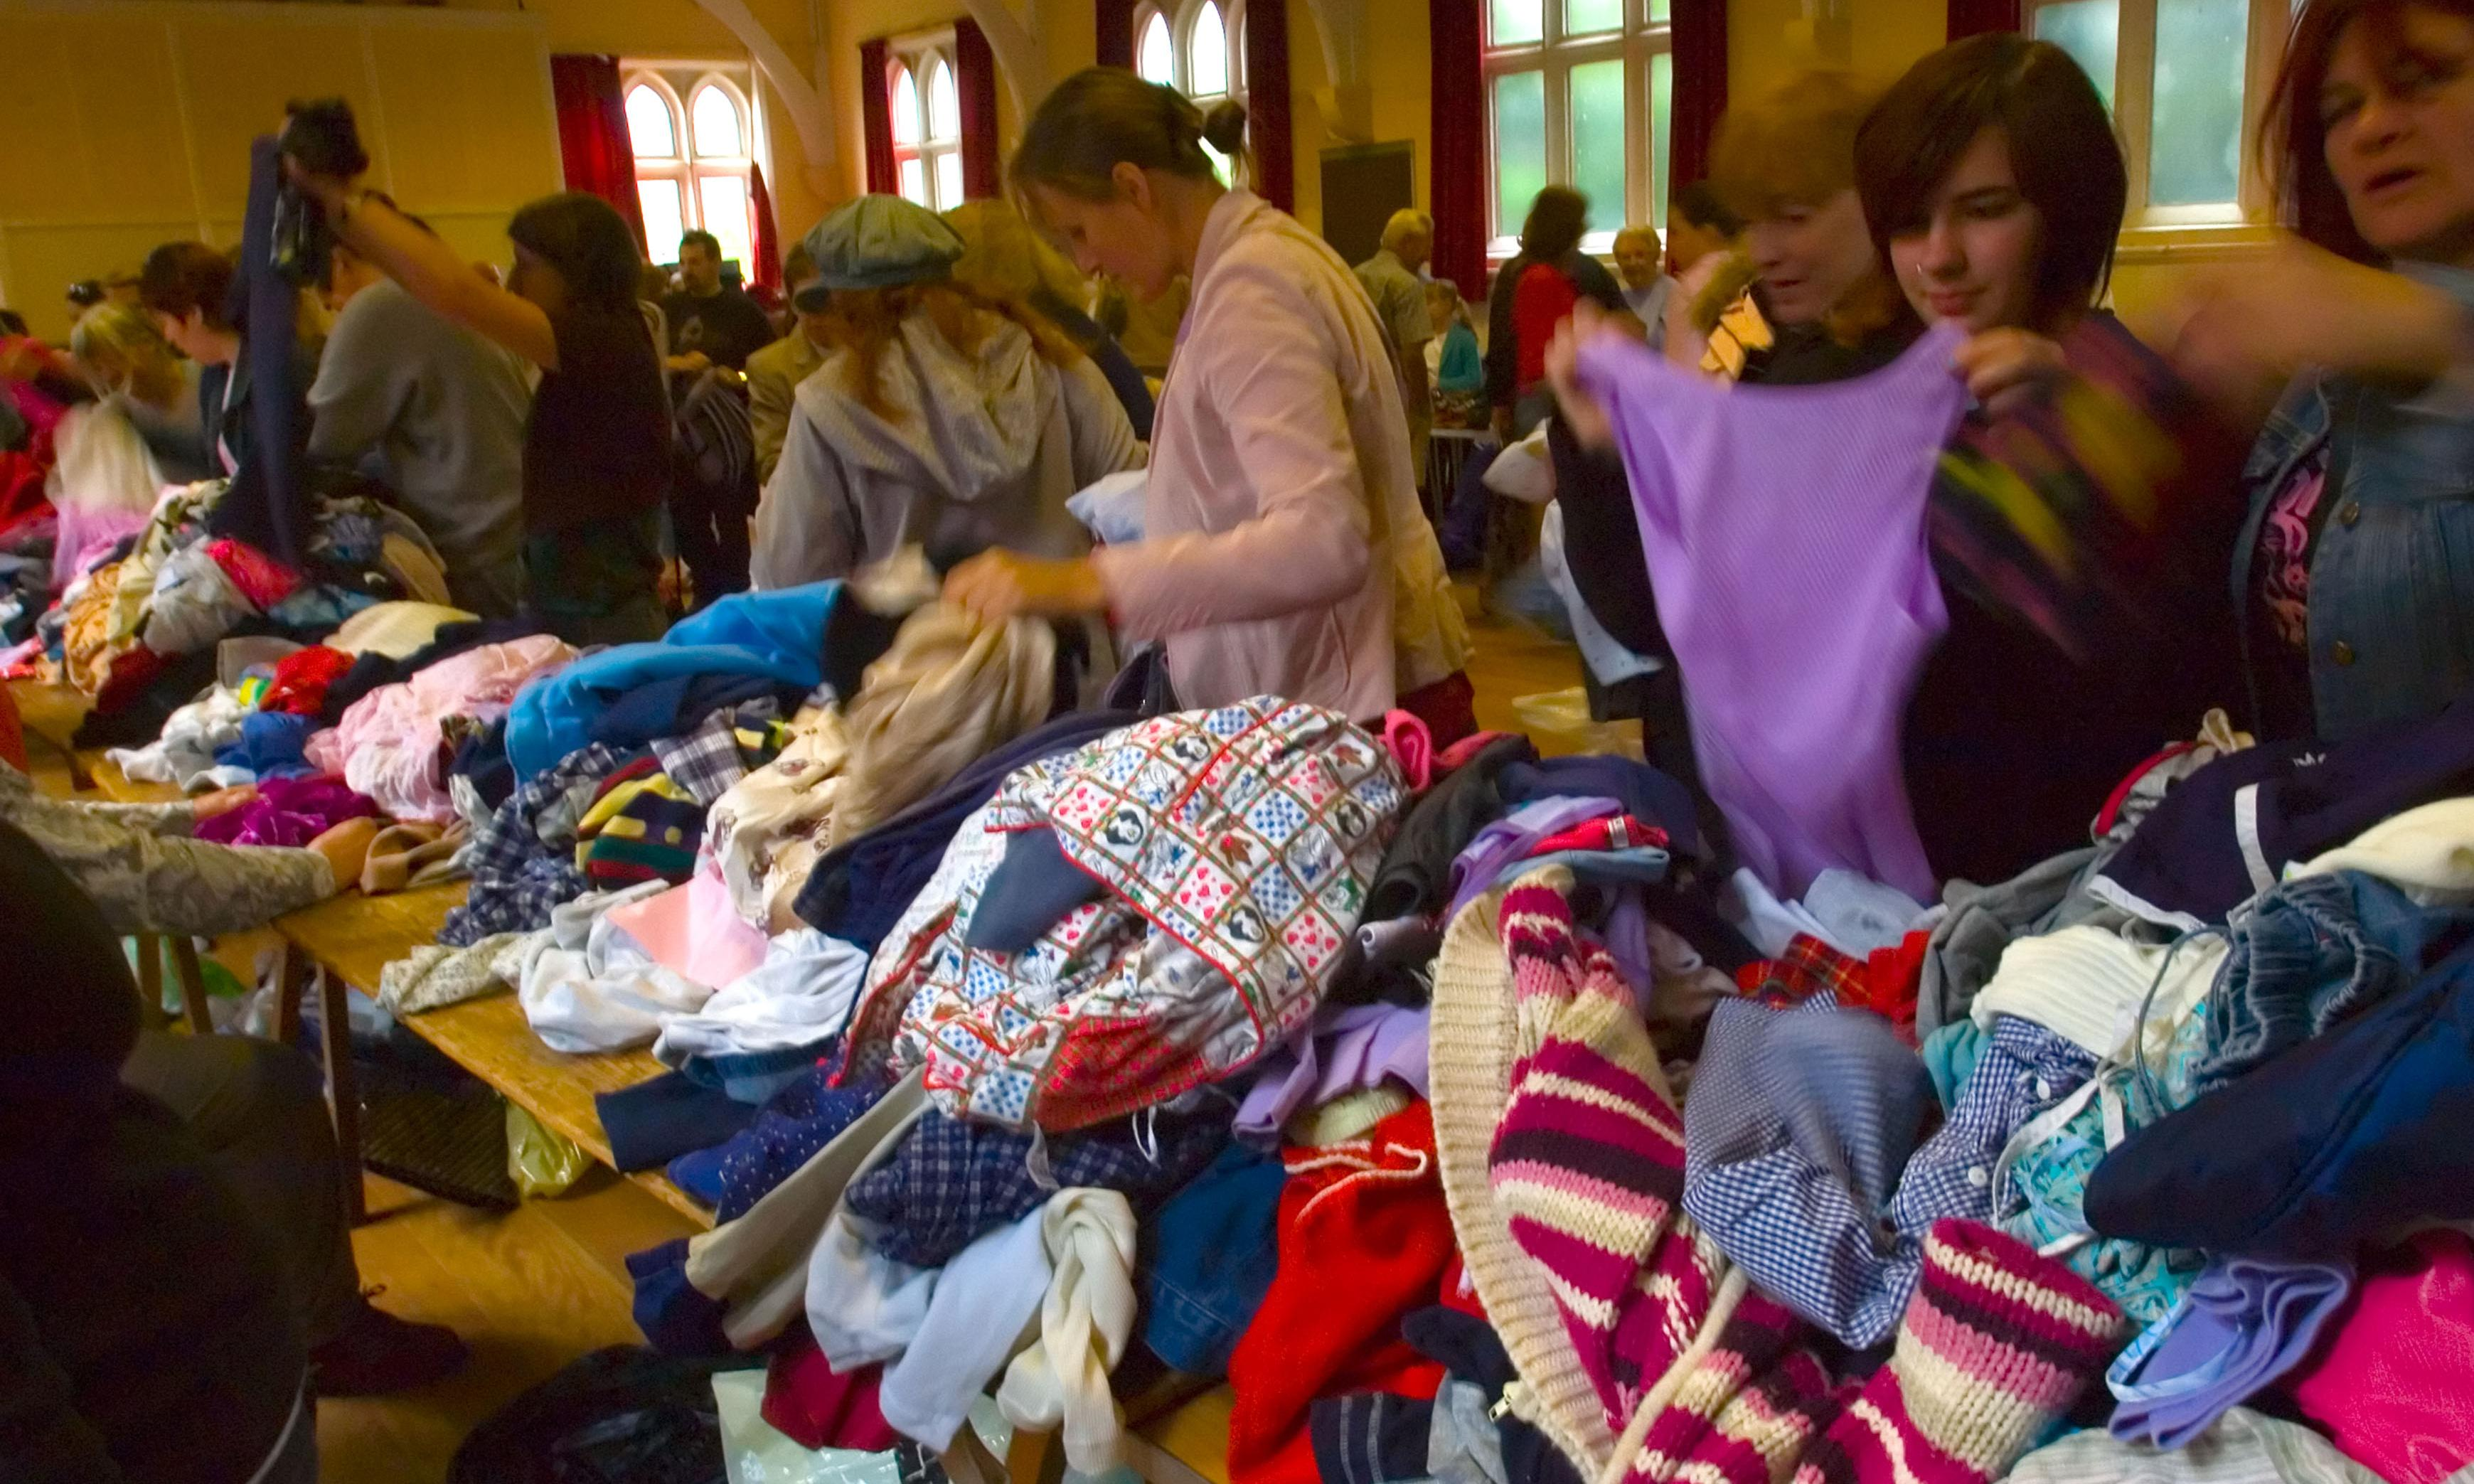 MPs call for 1p clothing tax and darning classes in schools to cut waste